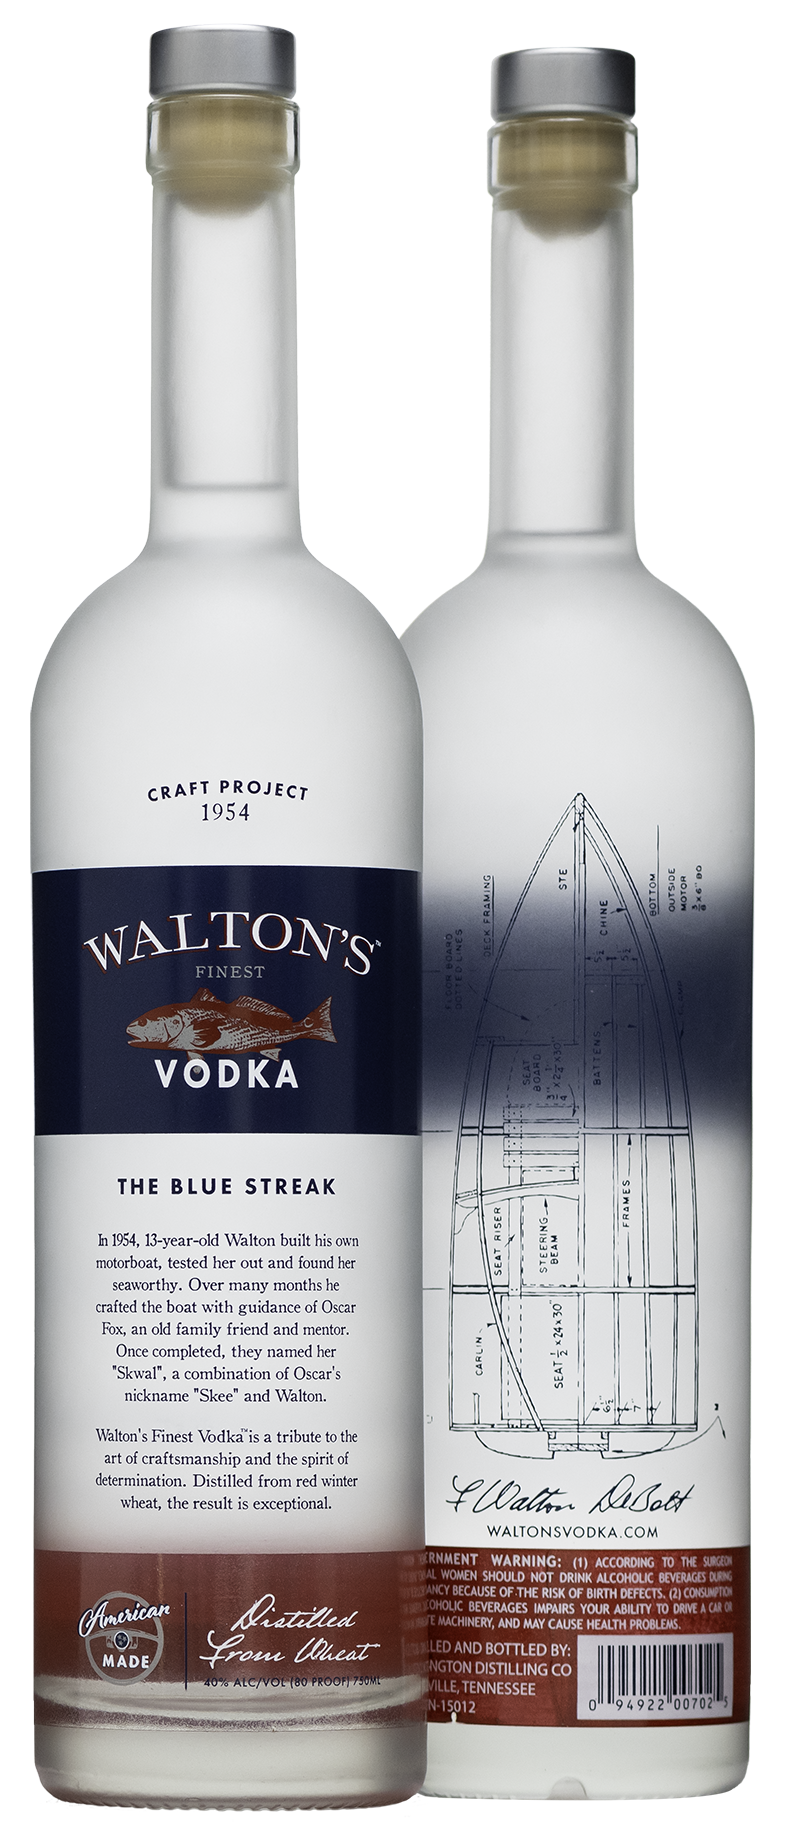 Walton's Finest Vodka